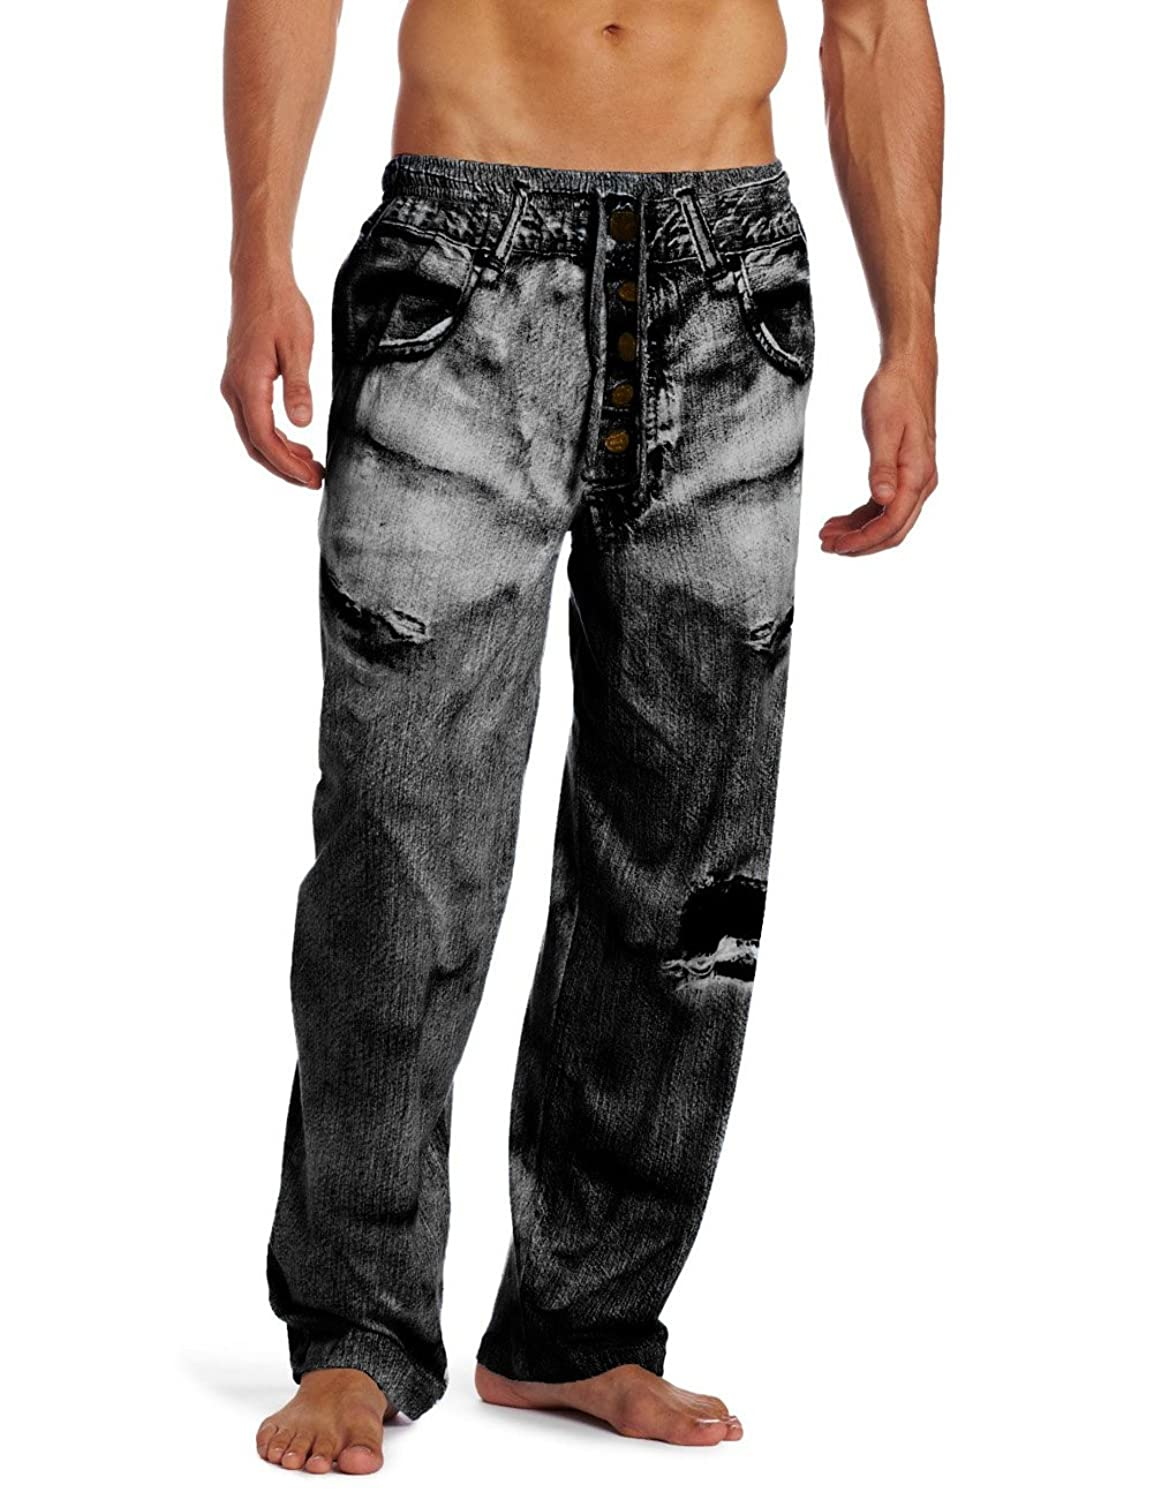 Mjc International Men's Generic Faux Denim Pajama Pant by Paul+Frank